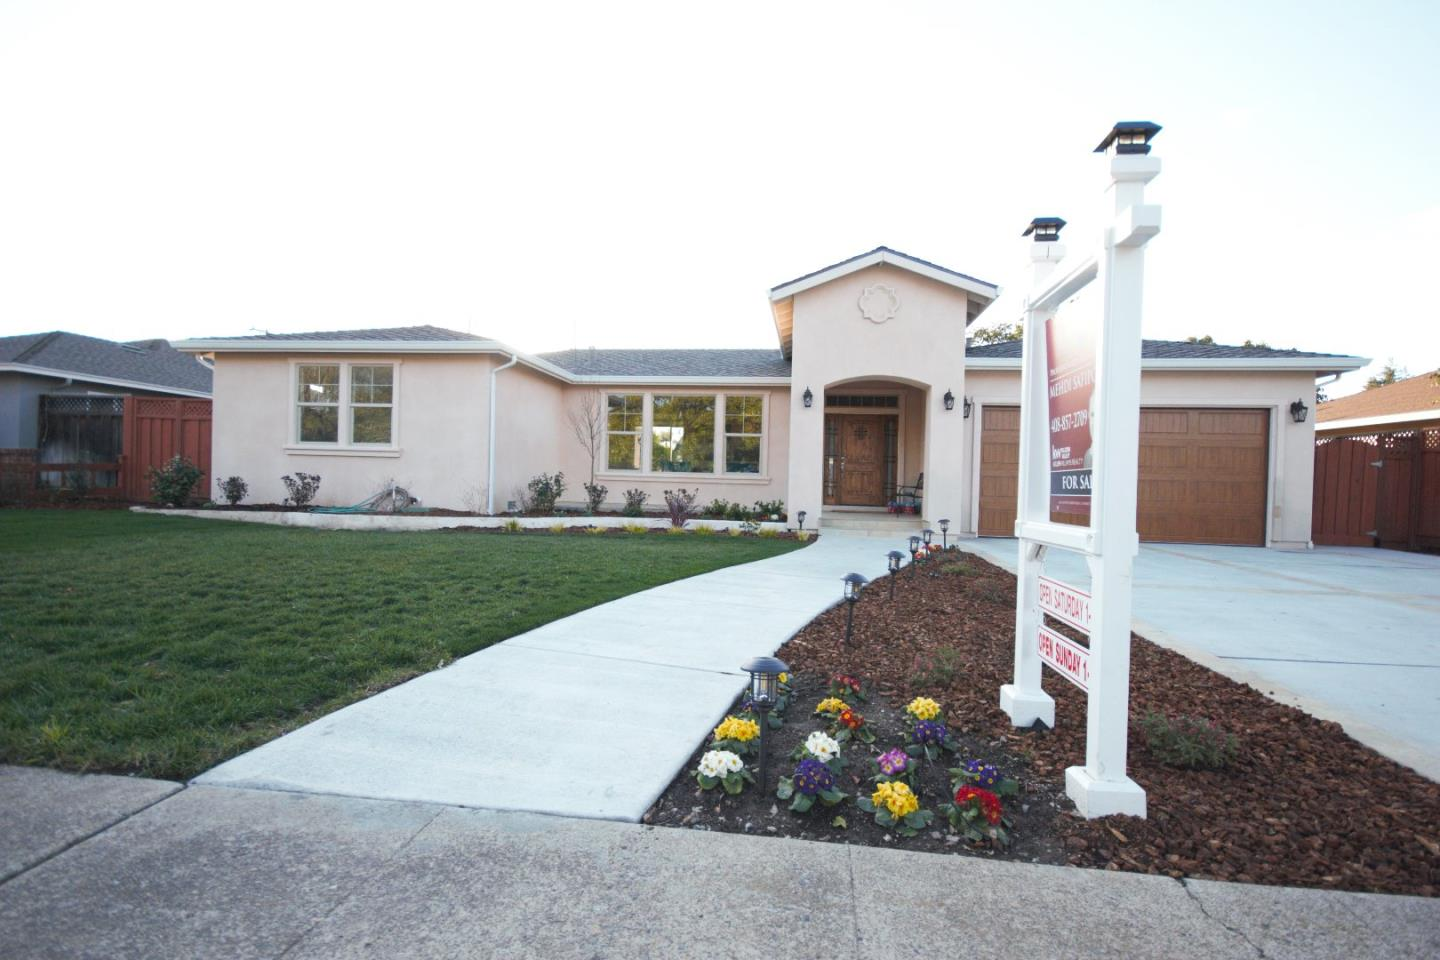 931 HARRISON AVE, CAMPBELL, CA 95008